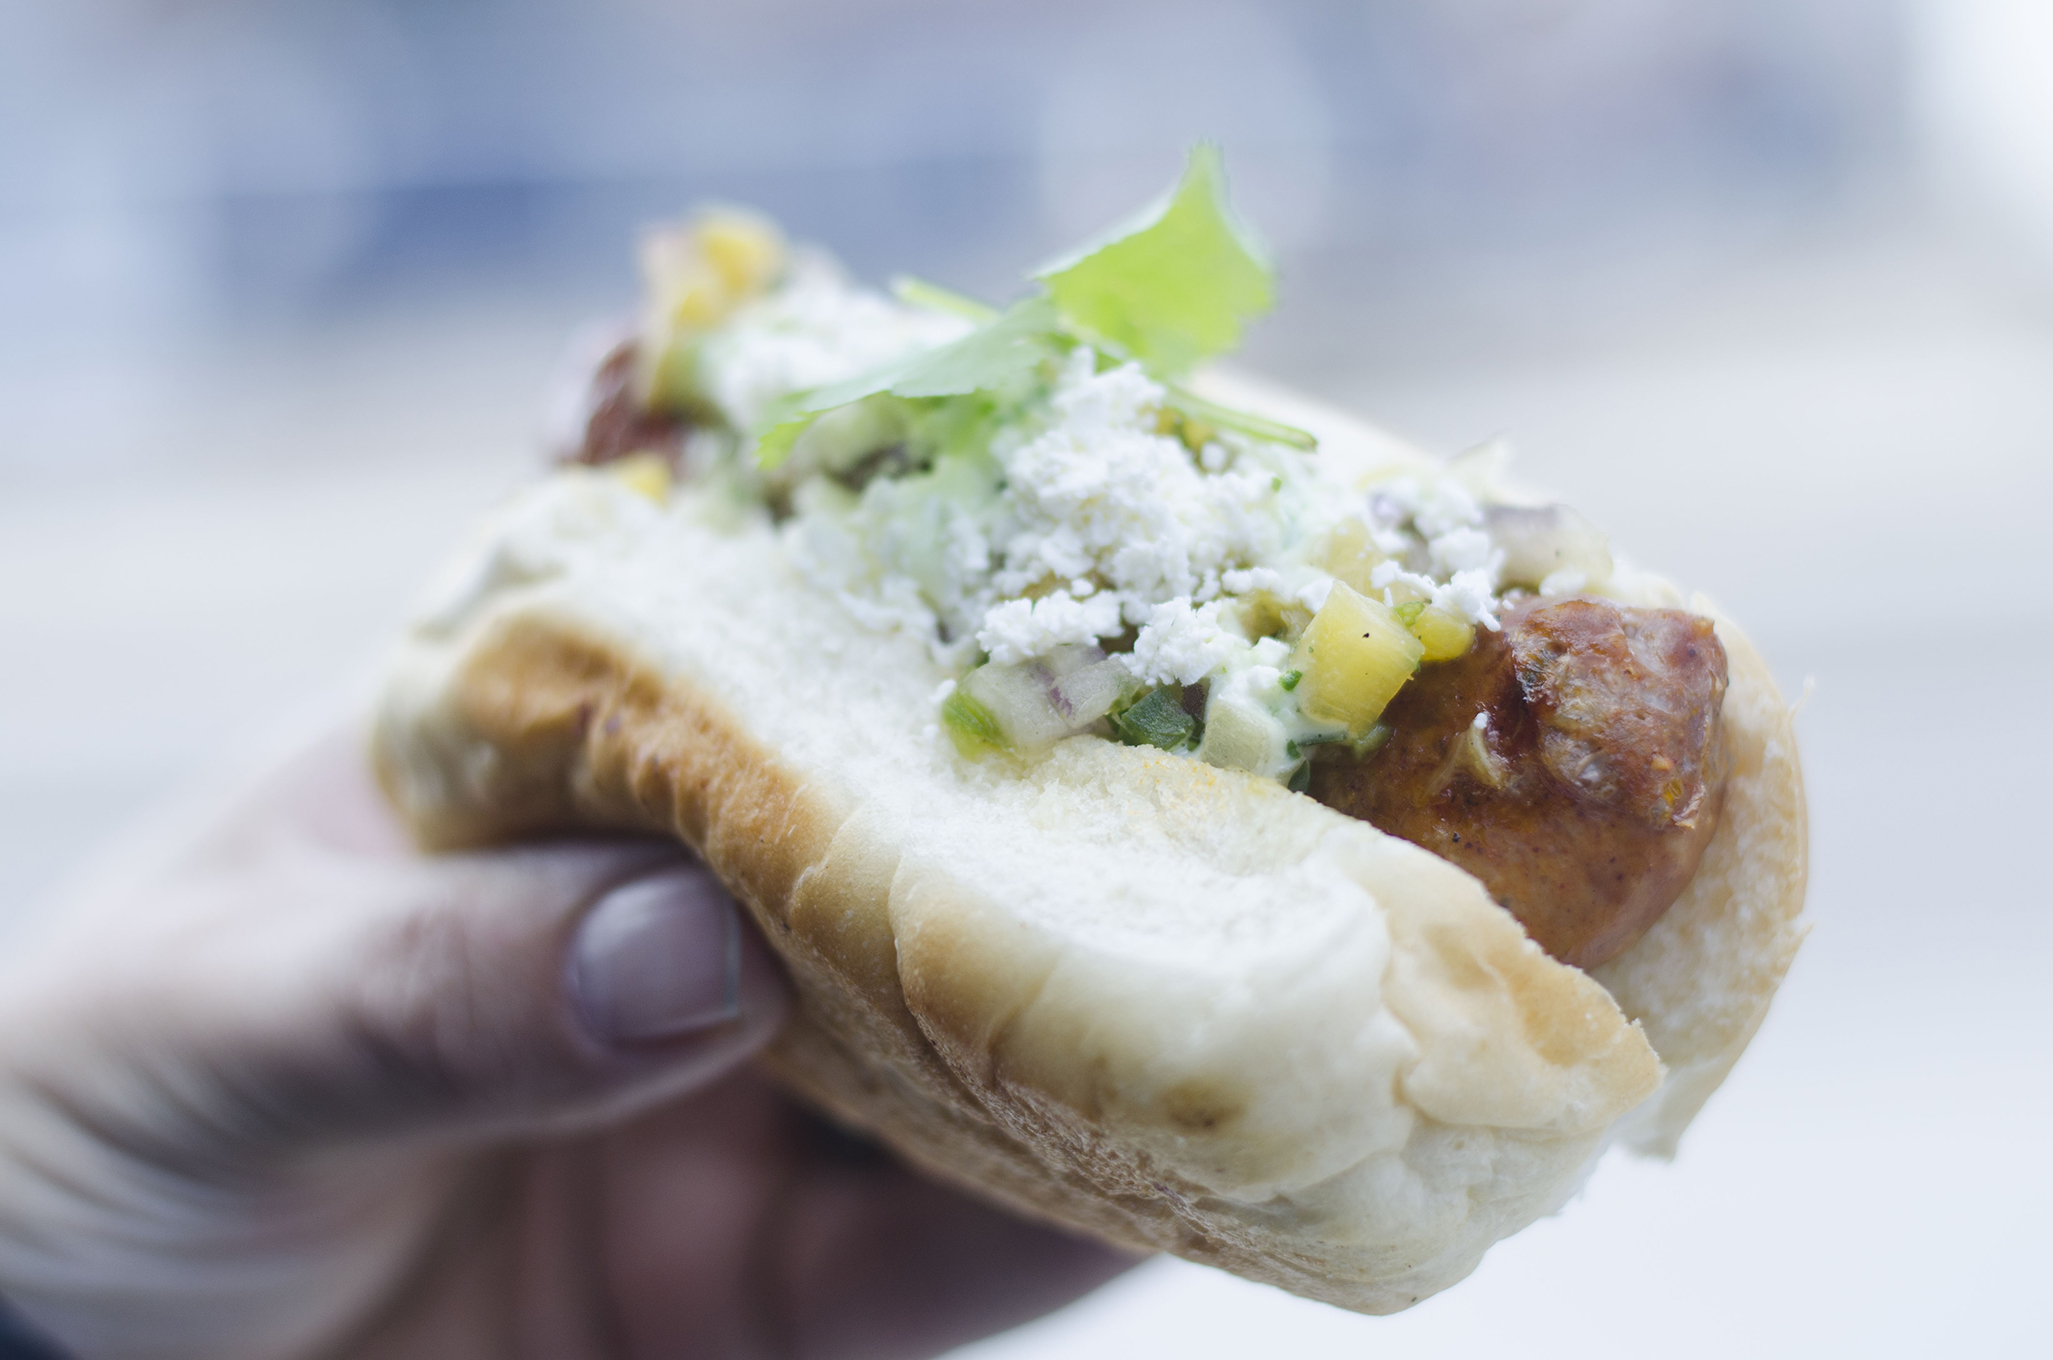 The Al Pastor Sausage is part of the Master Chef Sausage Series from Robbie's Gourmet Sausage Co. in Windsor, Ontario.